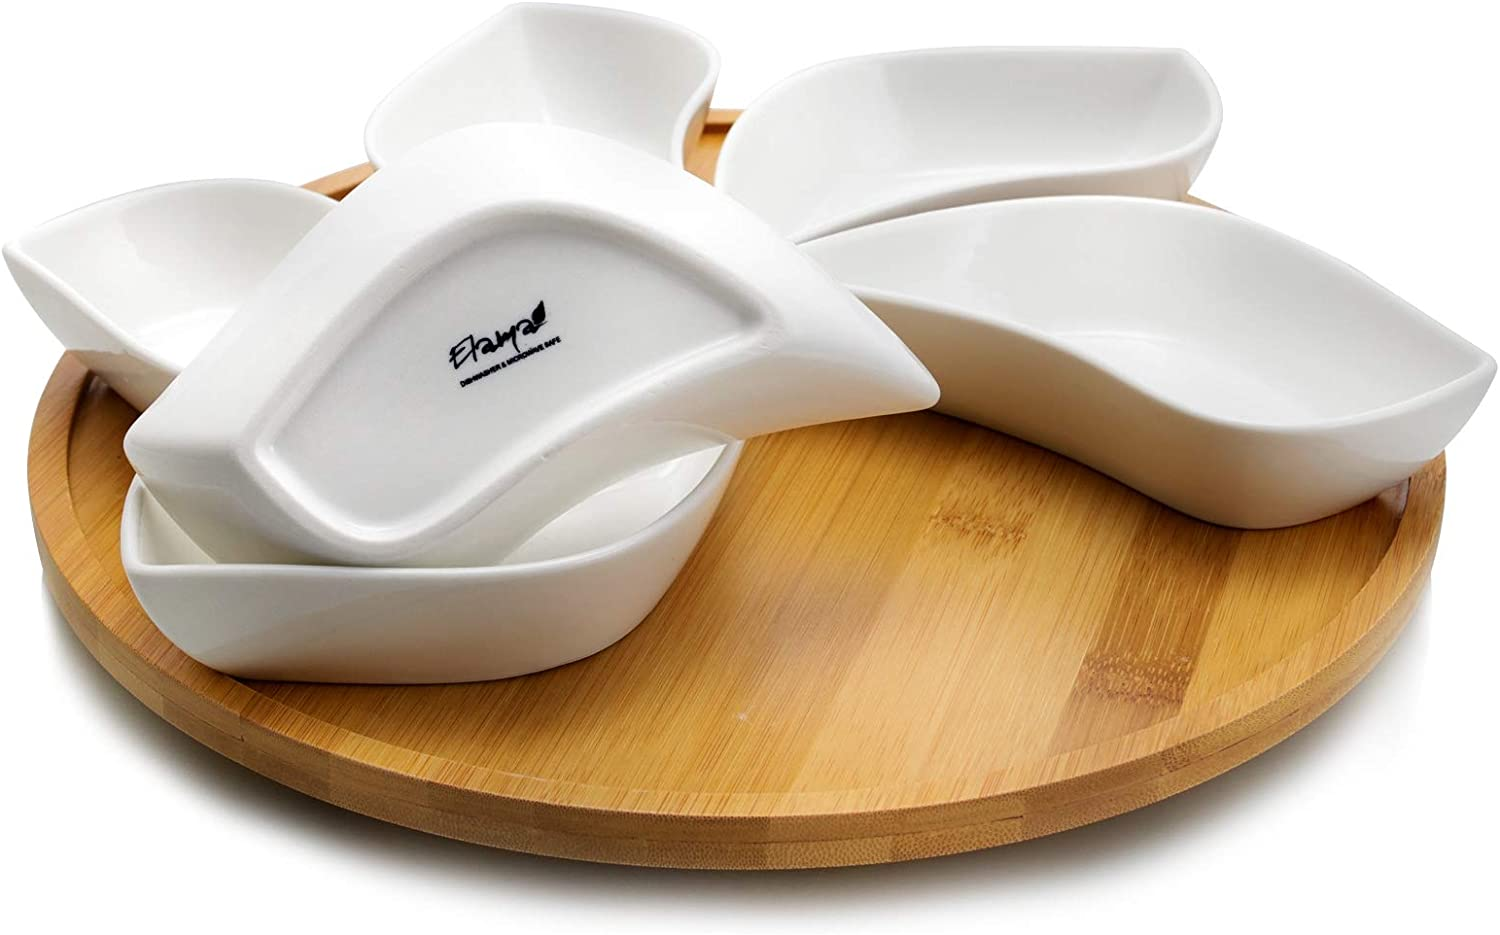 Amazon Com Elama Signature 7 Piece Modern Lazy Susan Appetizer And Condiment Server Set With 6 Unique Design Serving Dishes And A Bamboo Lazy Suzan Serving Tray 13 5 L Serveware